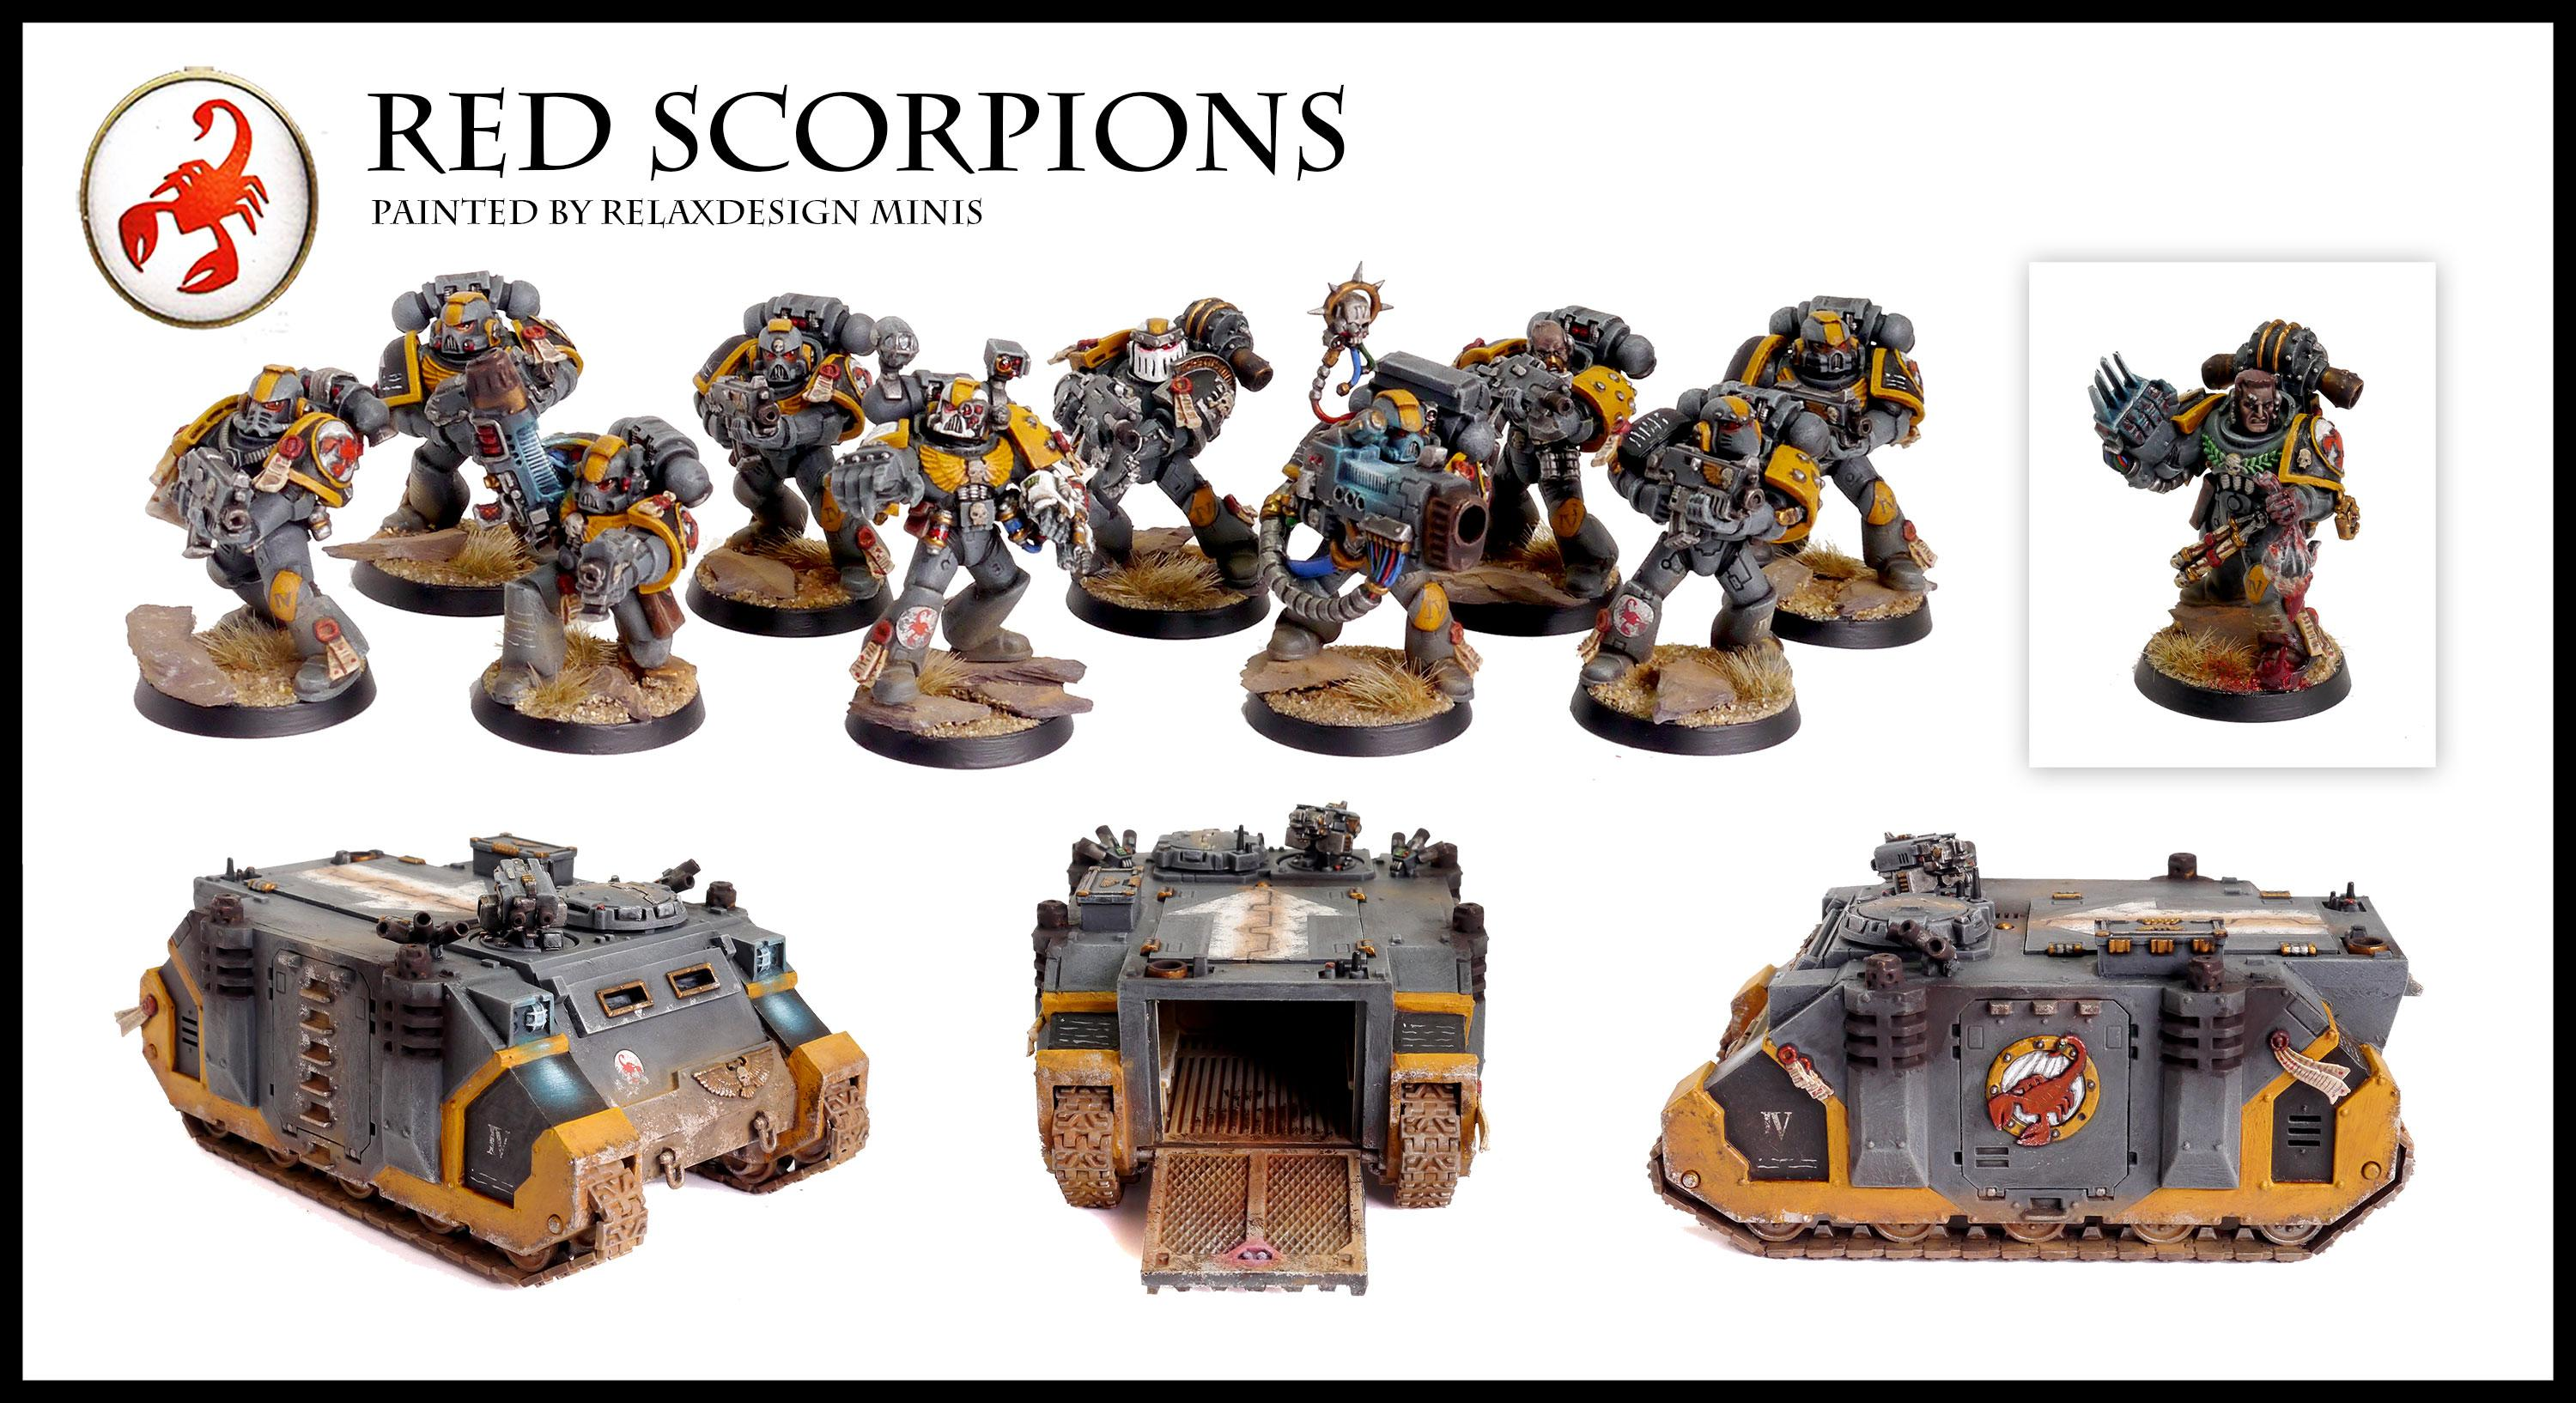 Apothecary, Forge World, Games Workshop, Red Scorpions, Rhino, Space Marines, Tactical Squad, Warhammer 40,000, Warhammer Fantasy